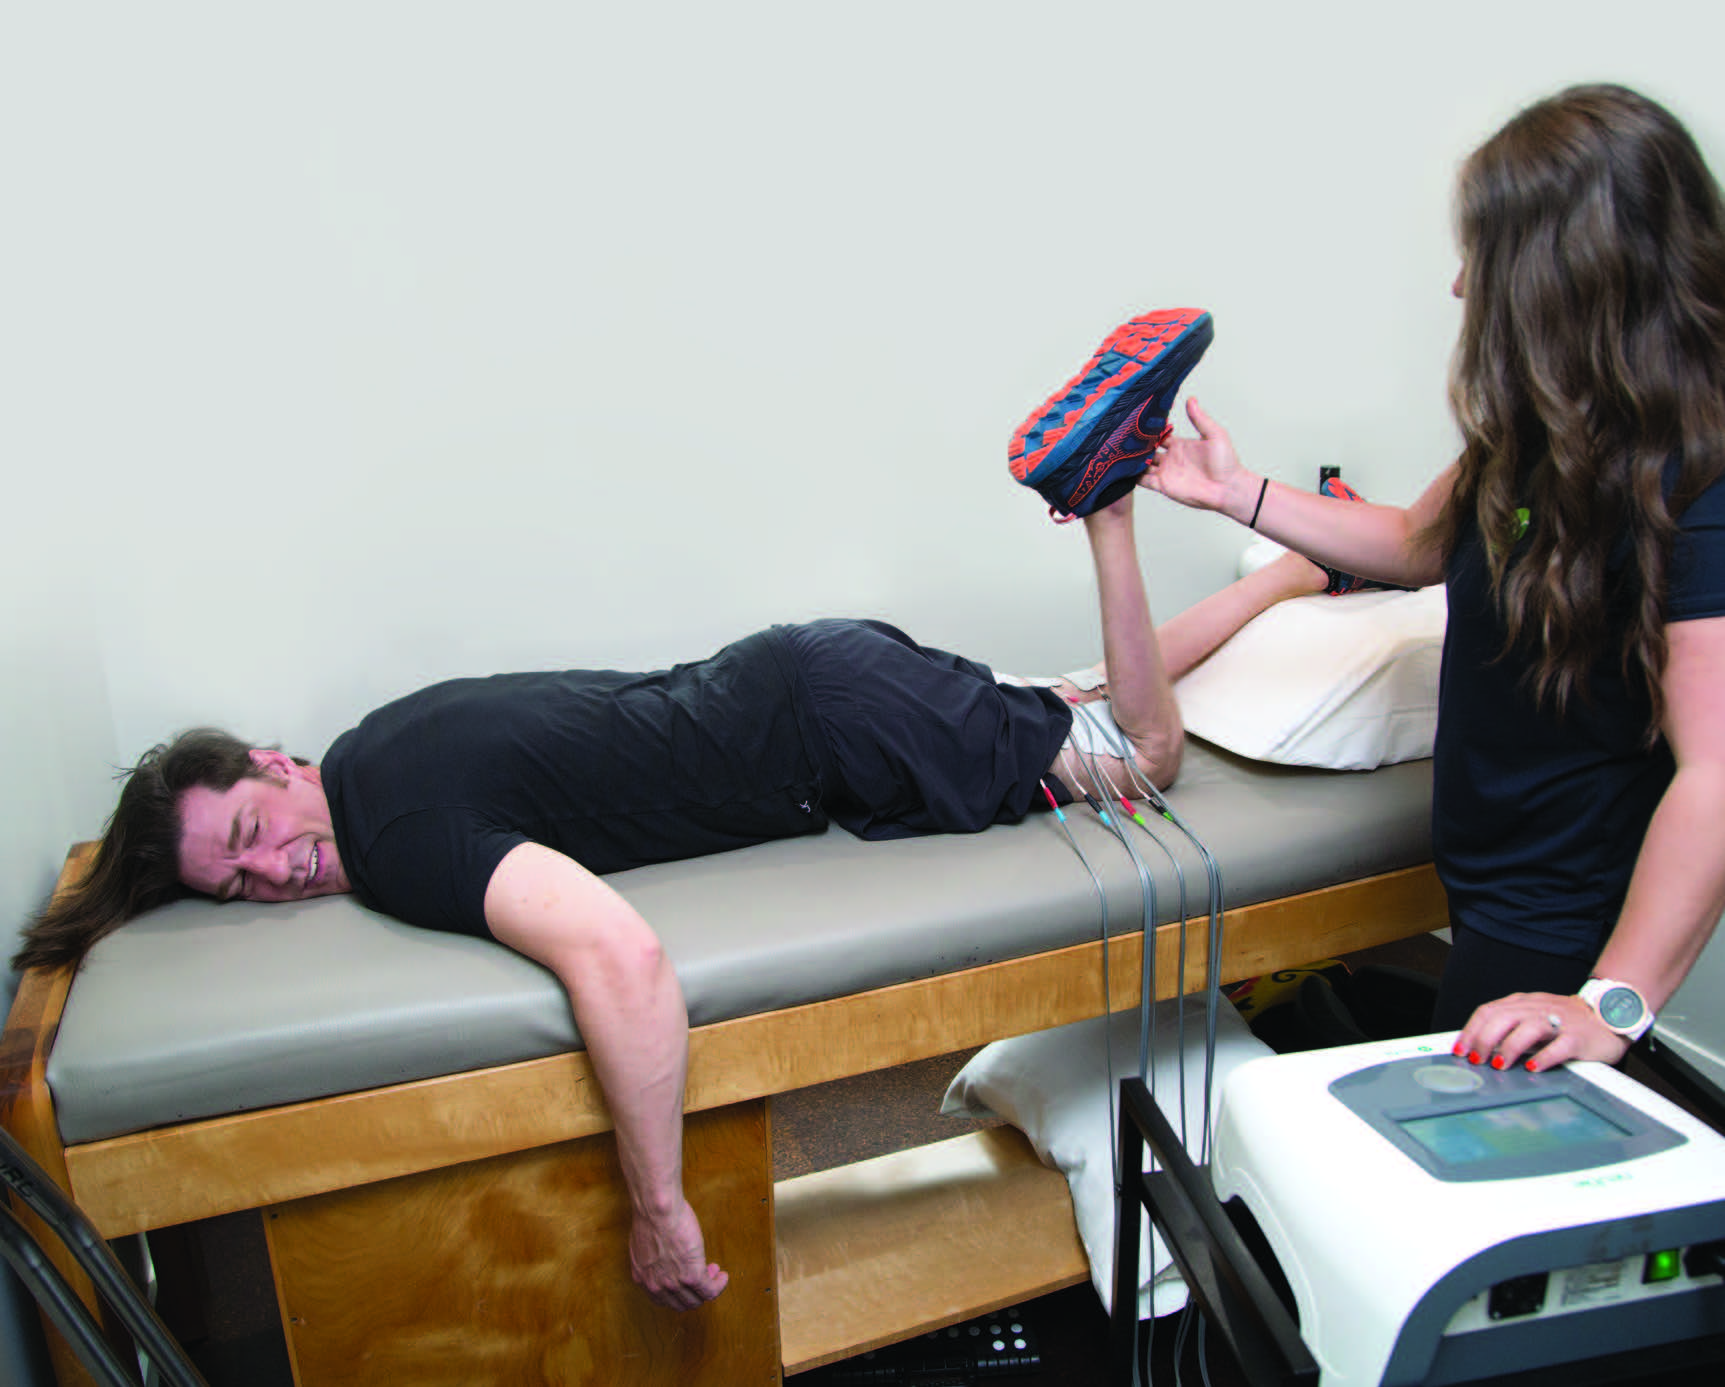 Neuromuscular Reeducation Rehab: Recovering Patients from Injury